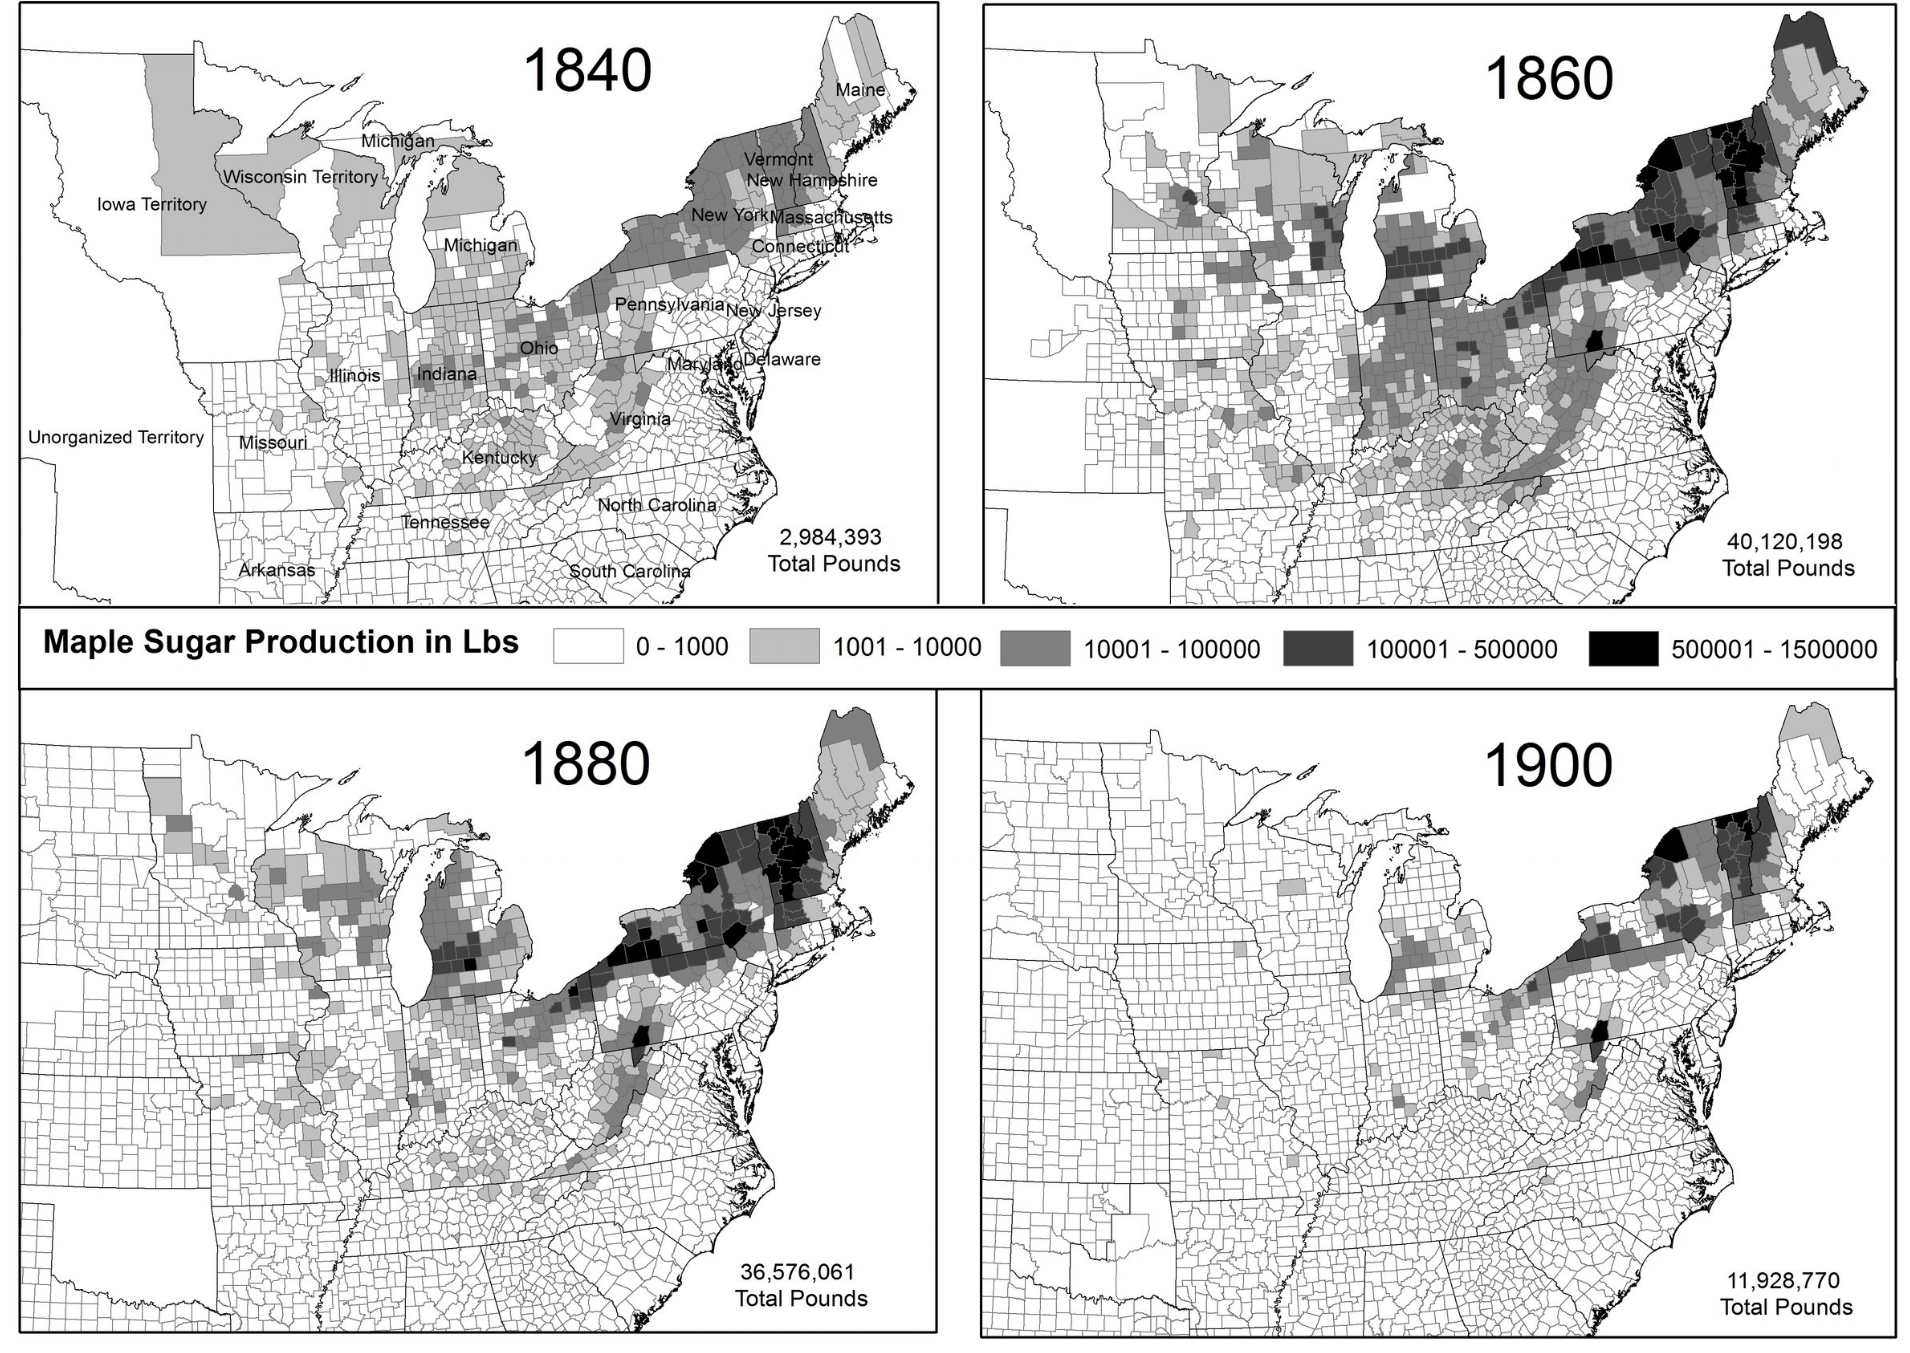 Maple Sugar Production 1840-1900.jpg